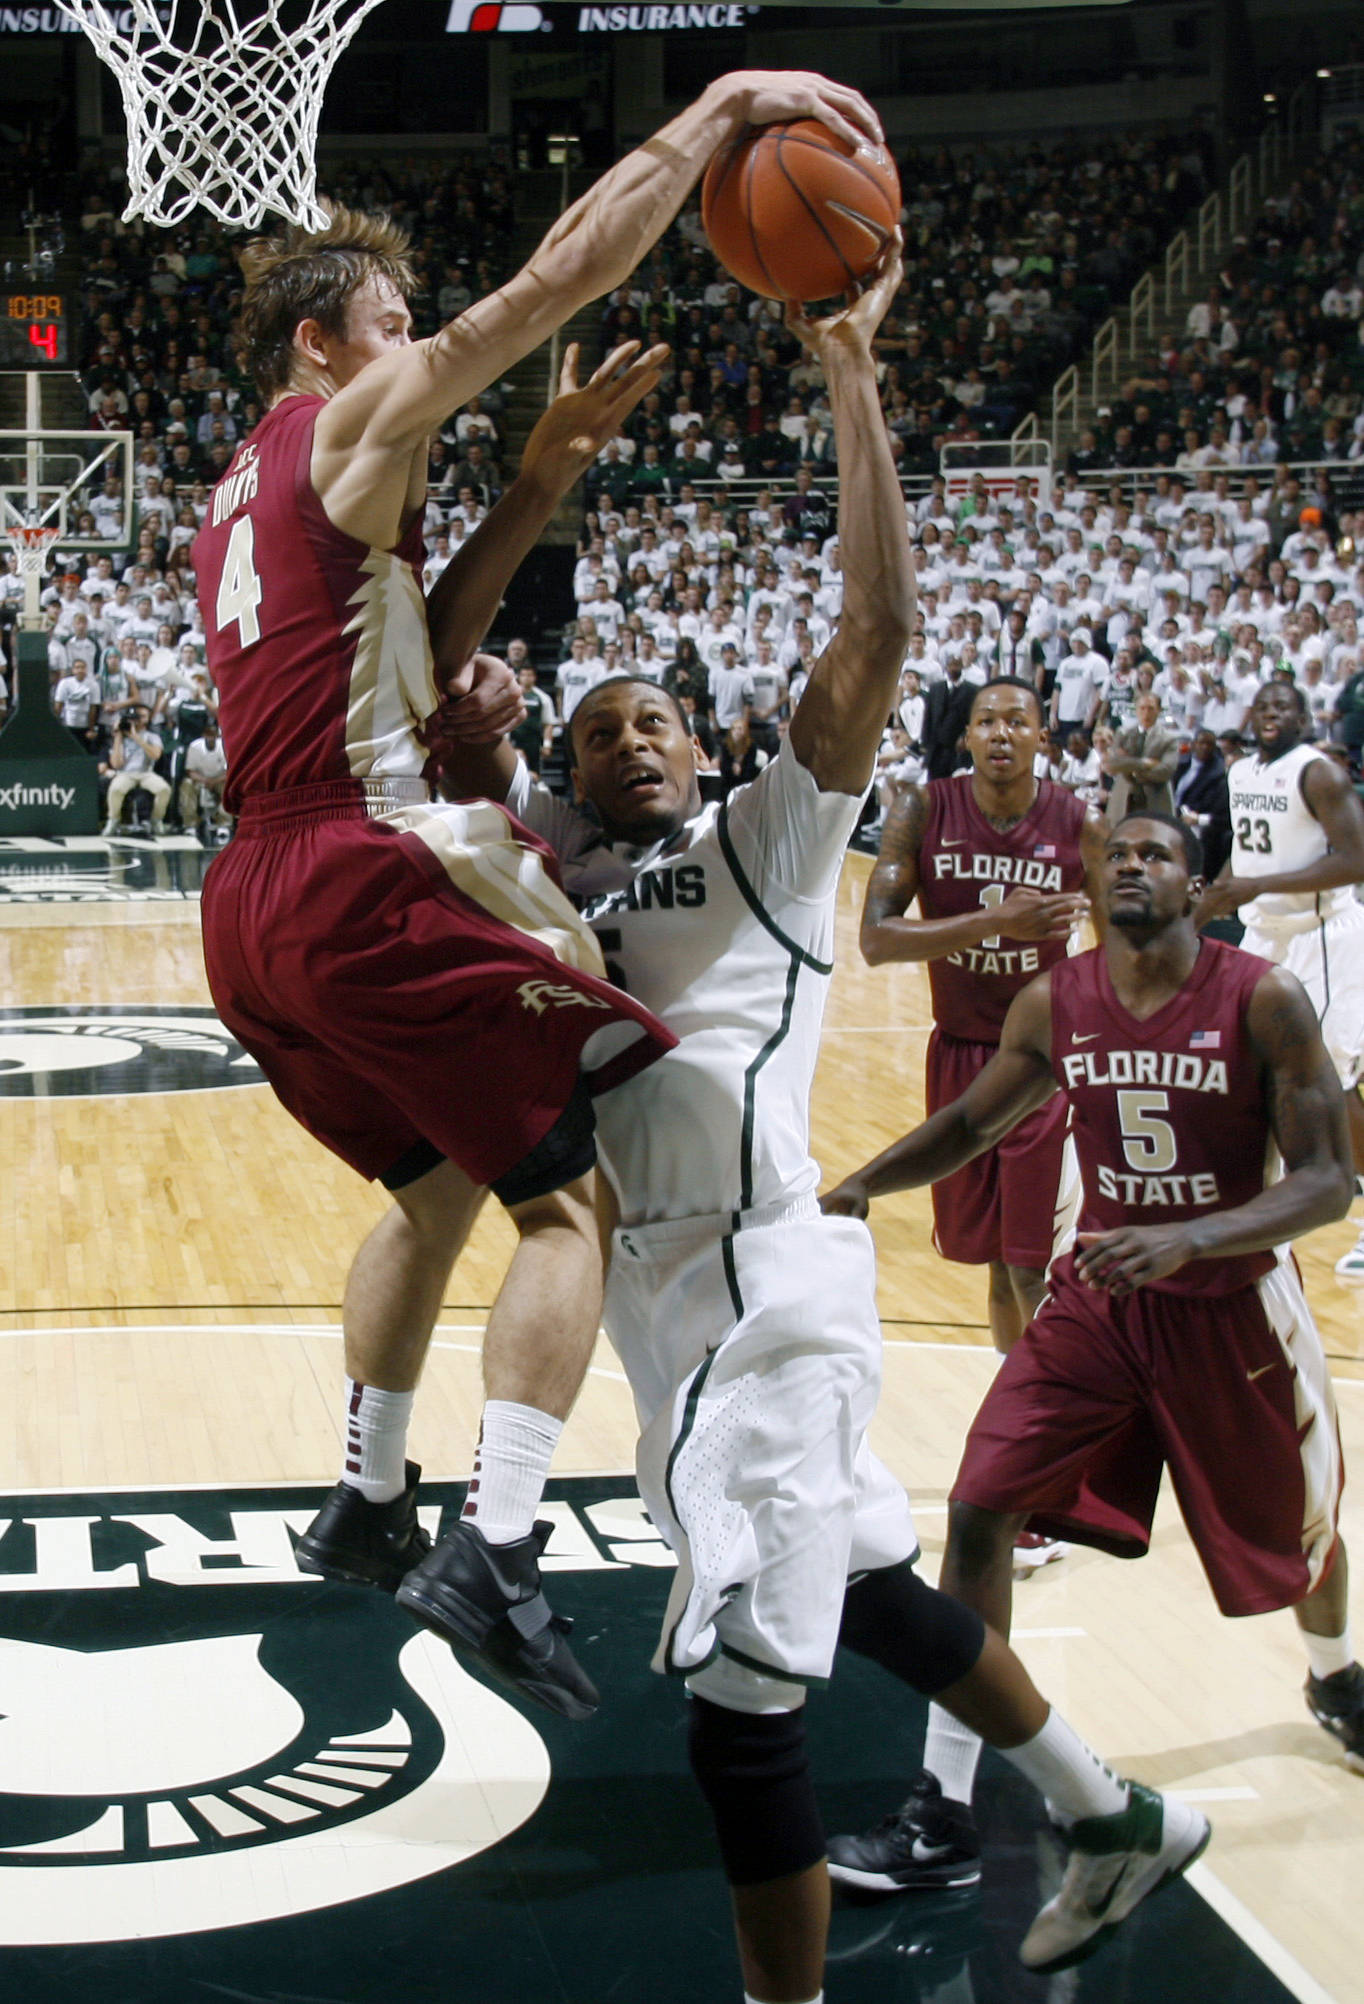 Florida State's Deividas Dulkys, left, blocks a shot by Michigan State's Adriean Payne during the first half of an NCAA college basketball game, Wednesday, Nov. 30, 2011, in East Lansing, Mich. (AP Photo/Al Goldis)